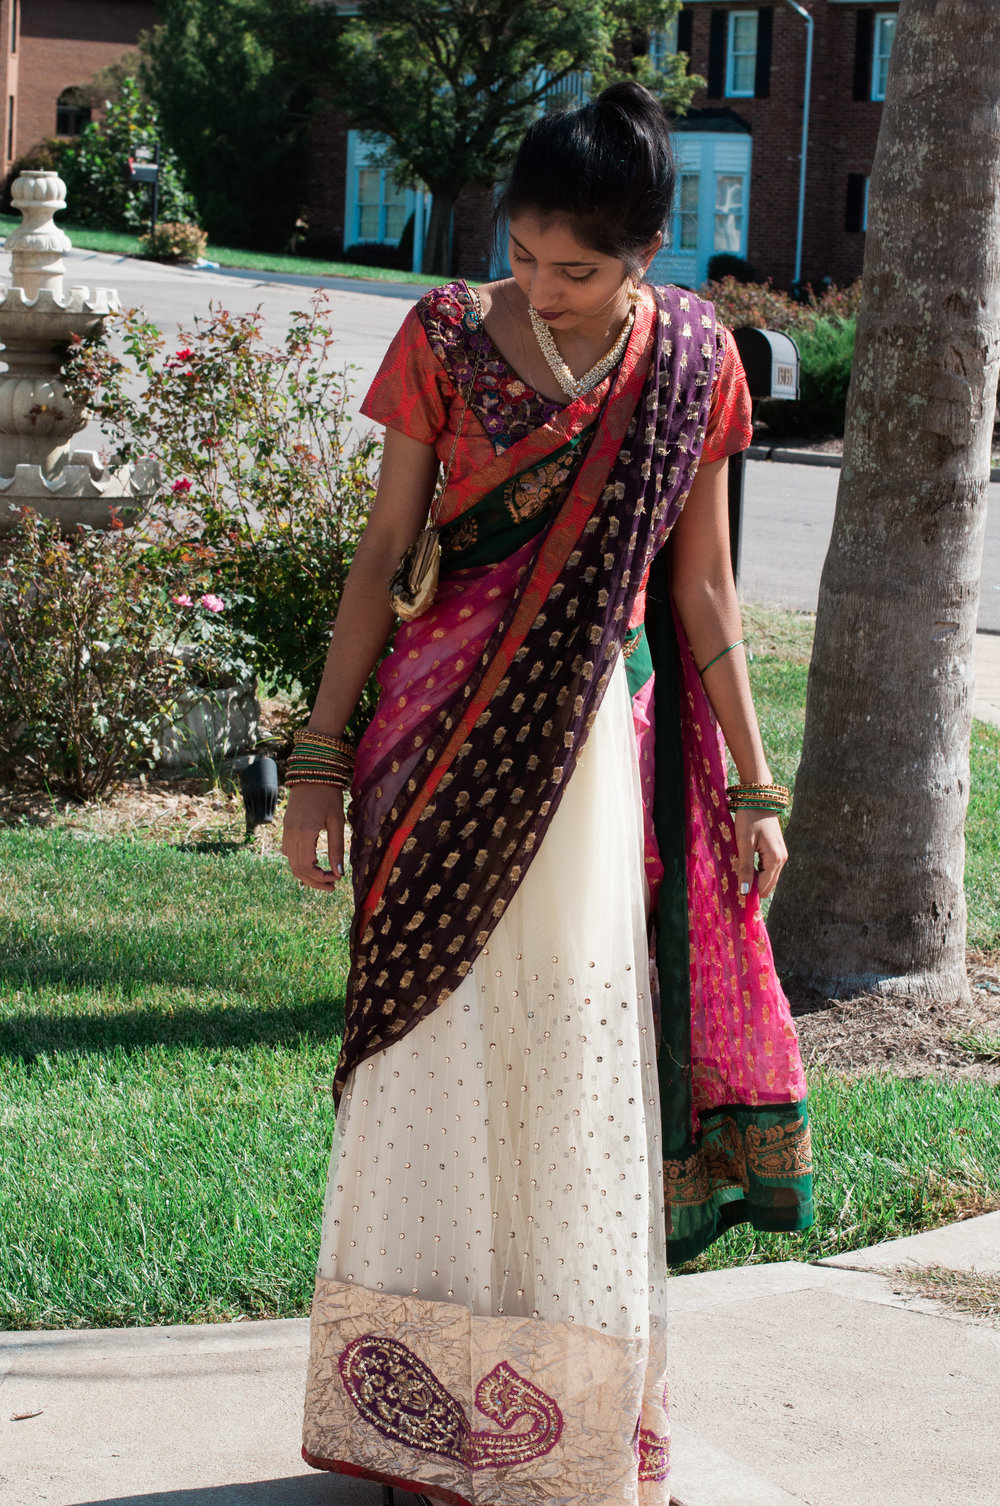 sari.fashionblogger.indianfashion.nyc.nycfashionblogger